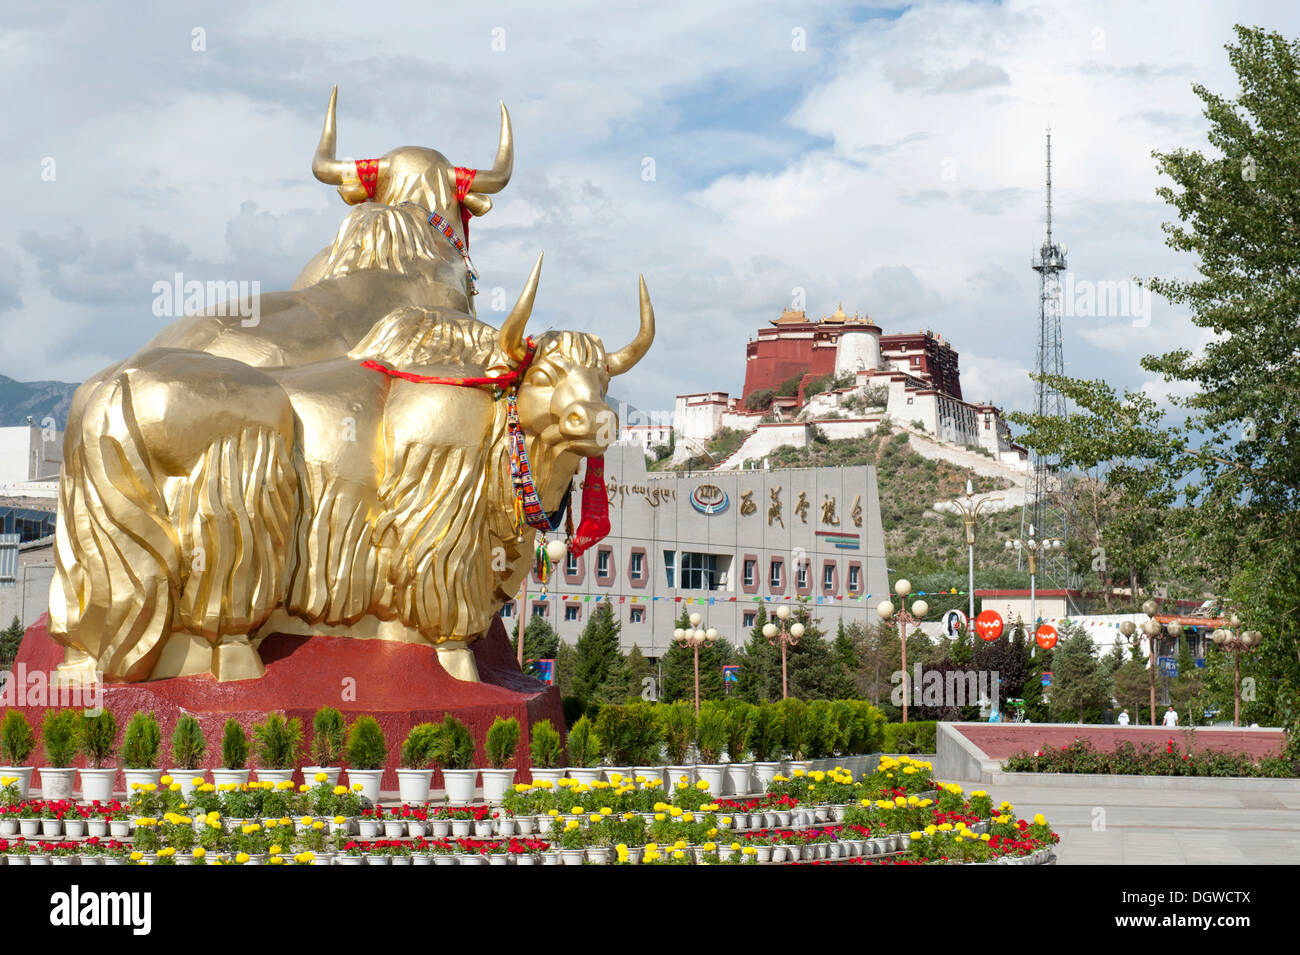 Monument, two golden yaks, Potala Palace at the back, modern city of Lhasa, U-Tsang, Central Tibet, Tibet Autonomous Region - Stock Image